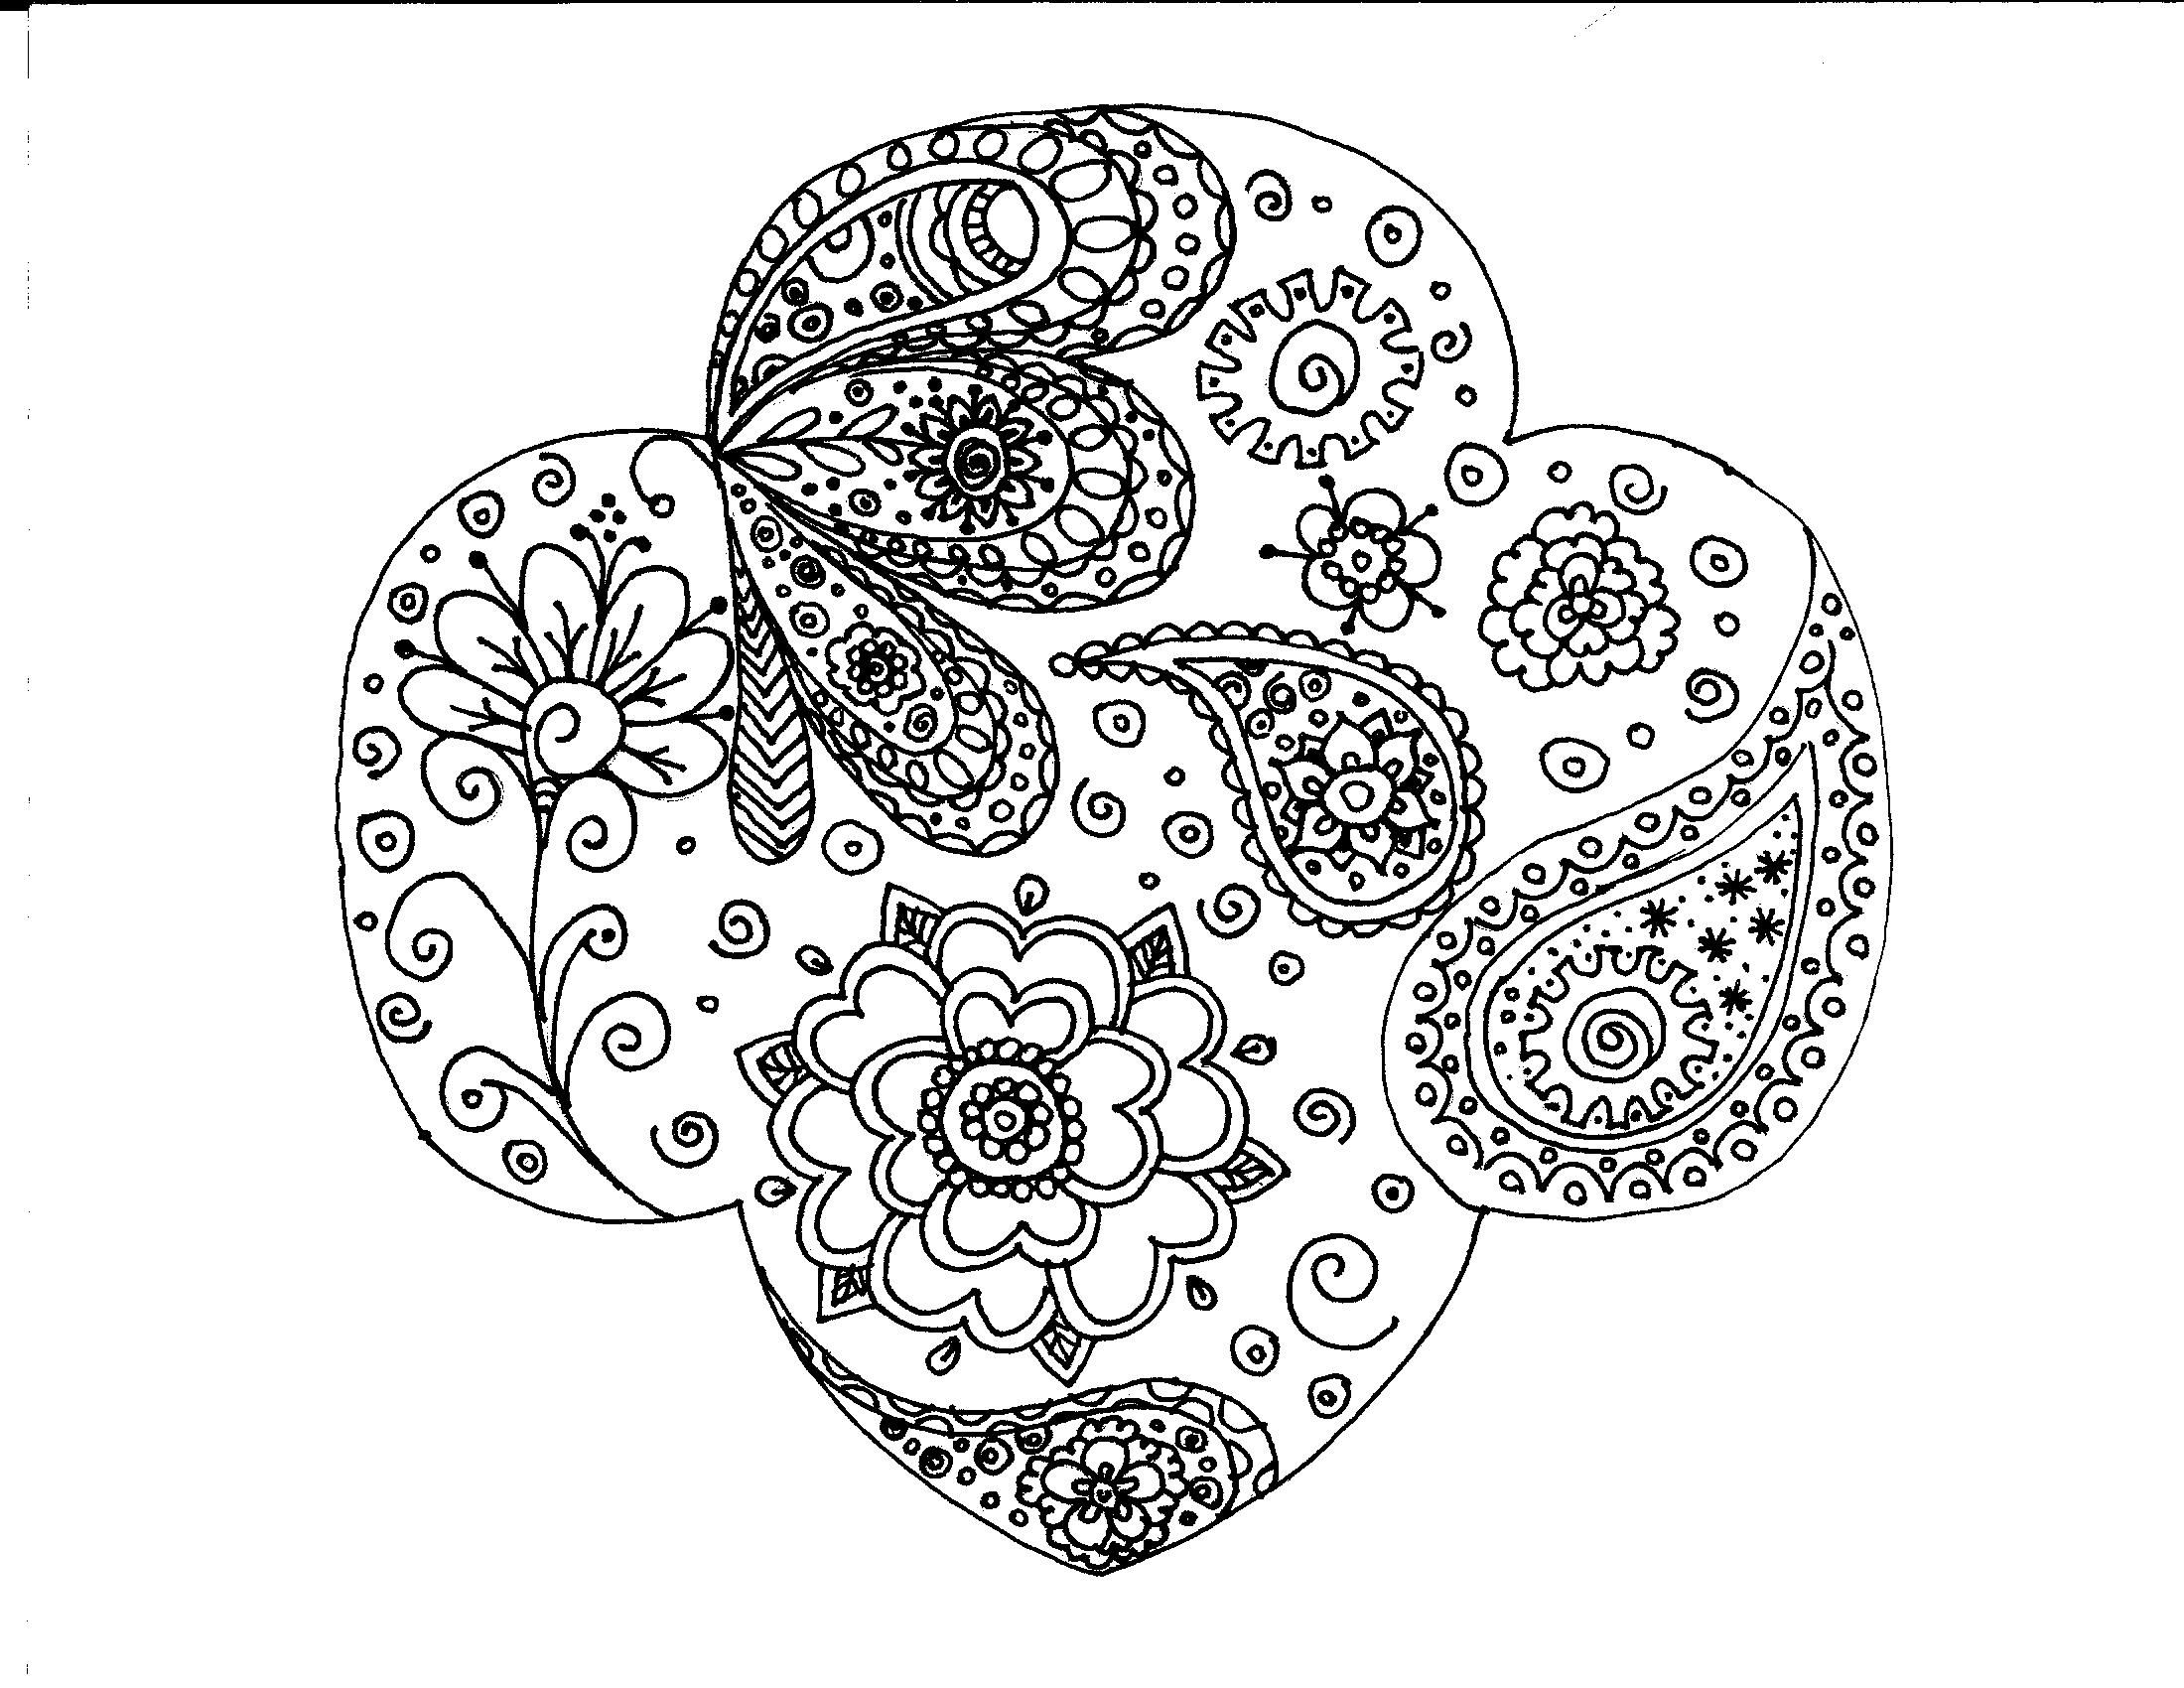 Girl Scout Trefoil Paisley Coloring Page I Wanted To Have A Troop Tshirt Made But Couldn T Find One Girl Scout Crafts Girl Scout Trefoil Brownie Girl Scouts